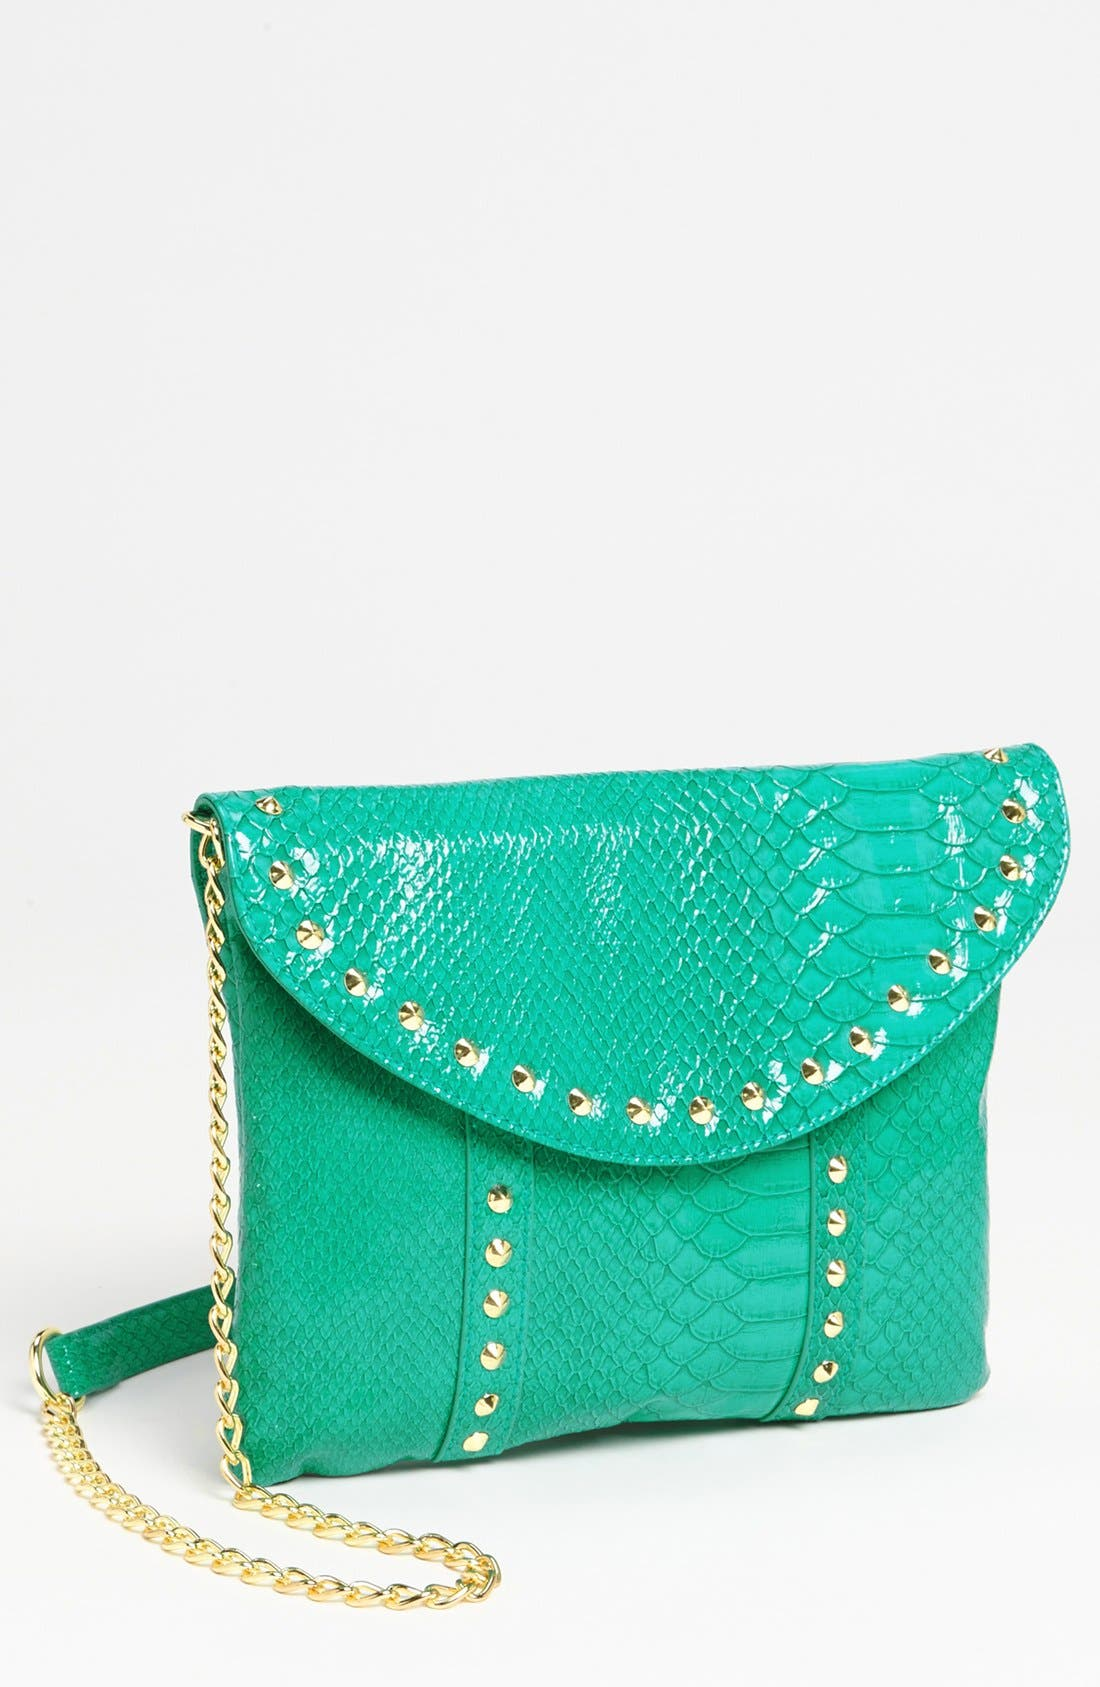 Main Image - Steven by Steve Madden Snake Embossed Faux Leather Crossbody Clutch